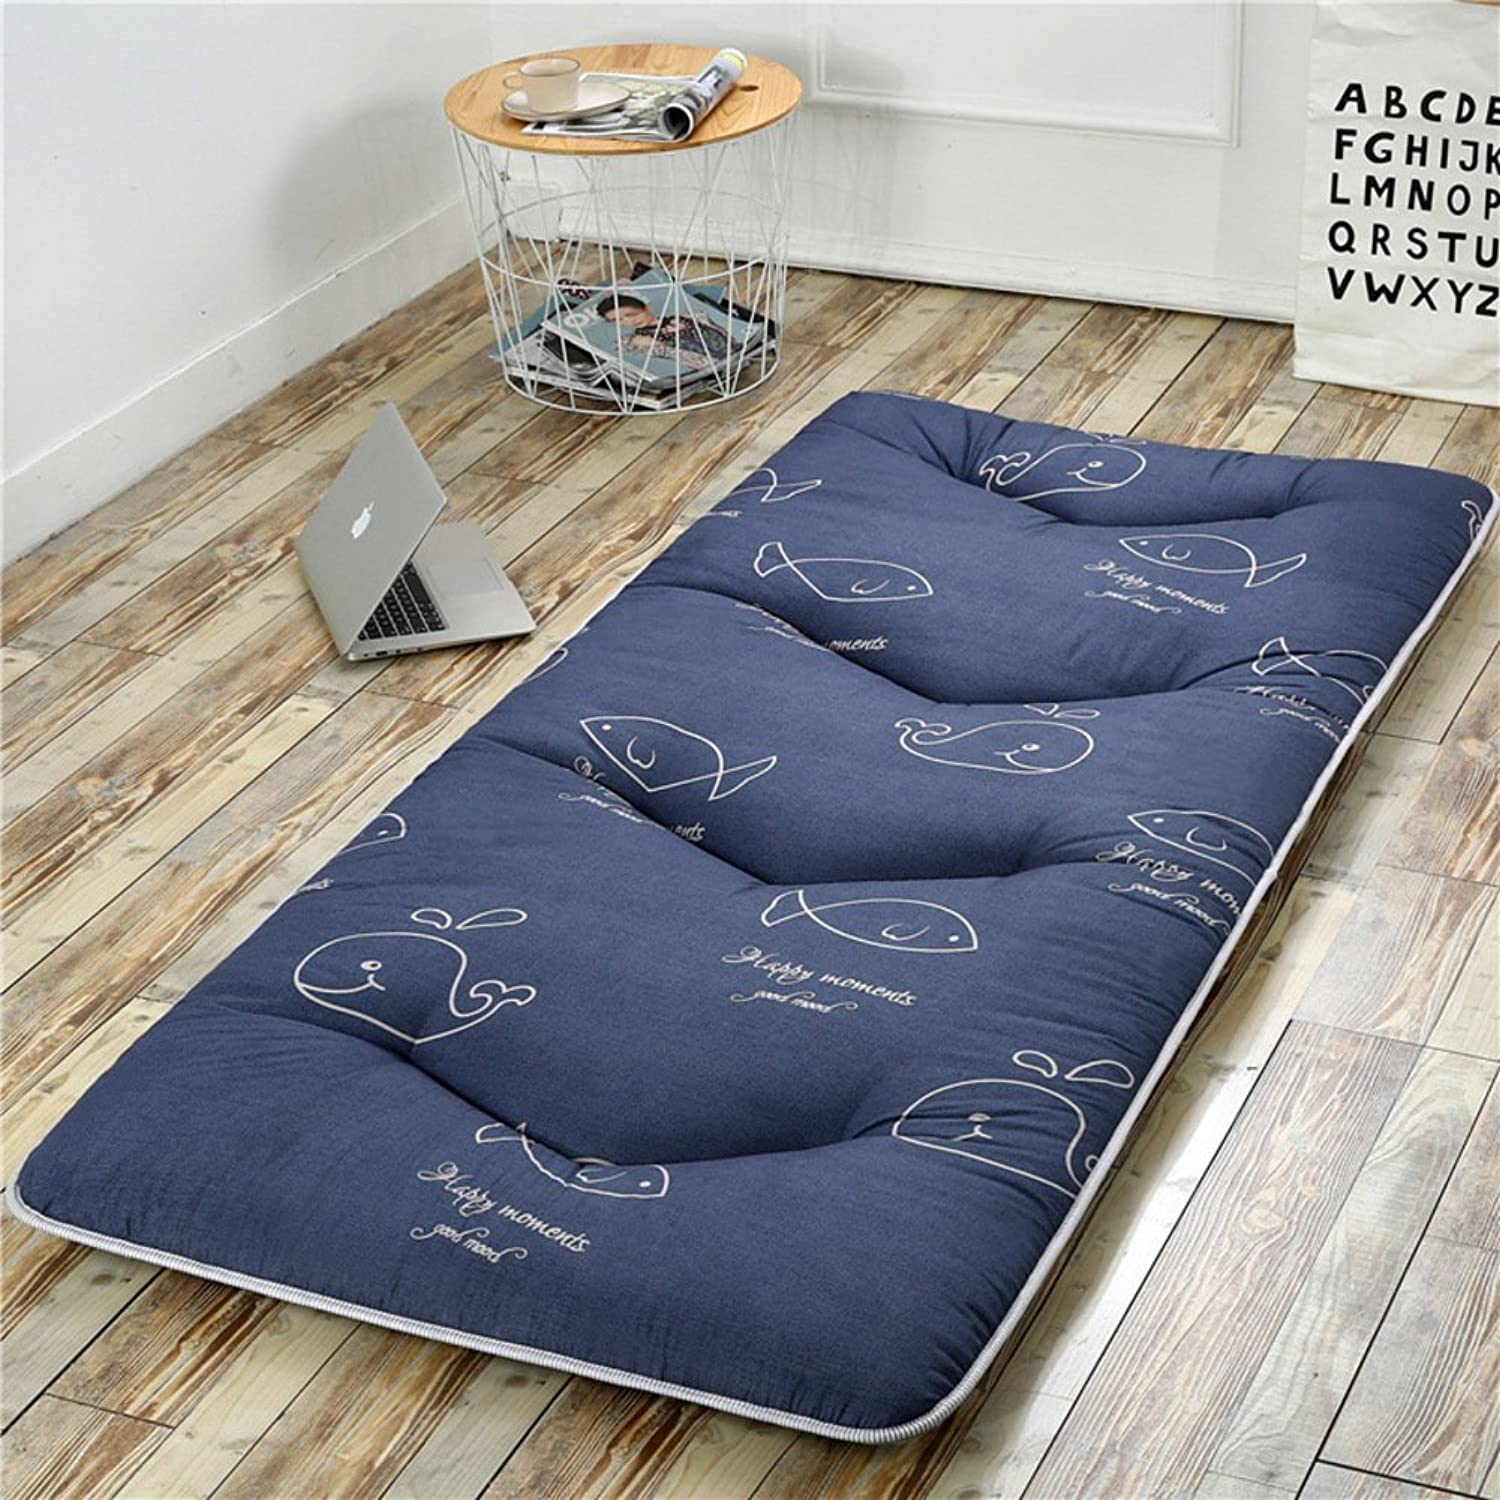 Folding Tatami Floor mat,Portable Sleeping pad Queen-King Traditional Japanese futon Washable-B 90x200cm(35x79inch)